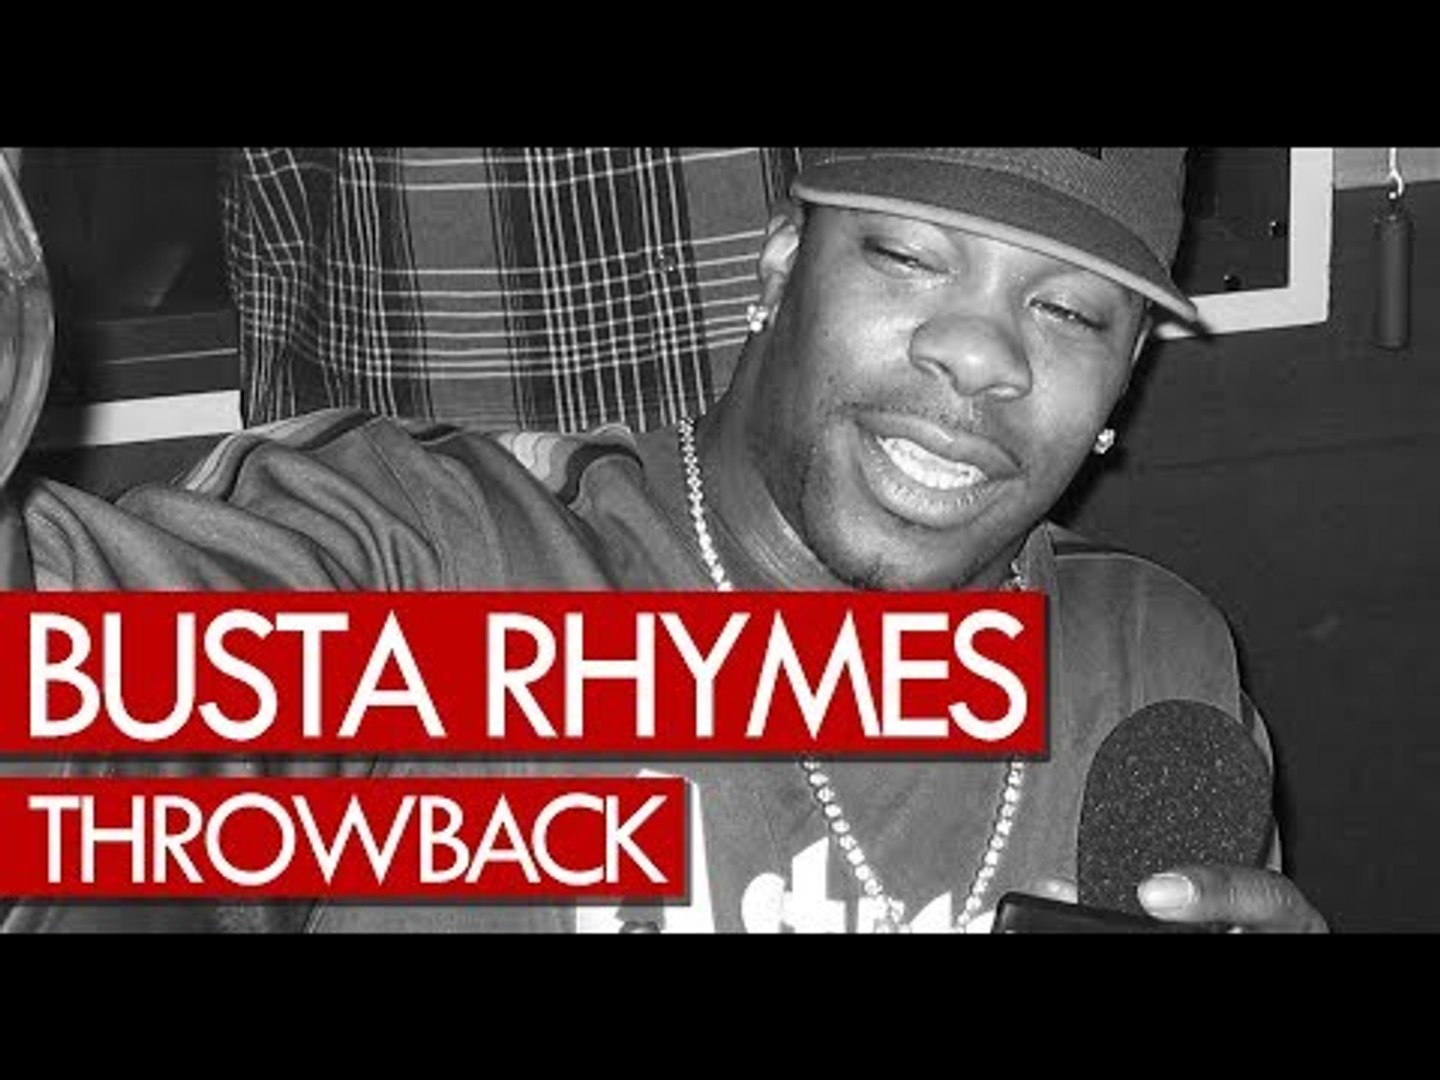 Busta Rhymes freestyle 1998 - never heard before throwback!